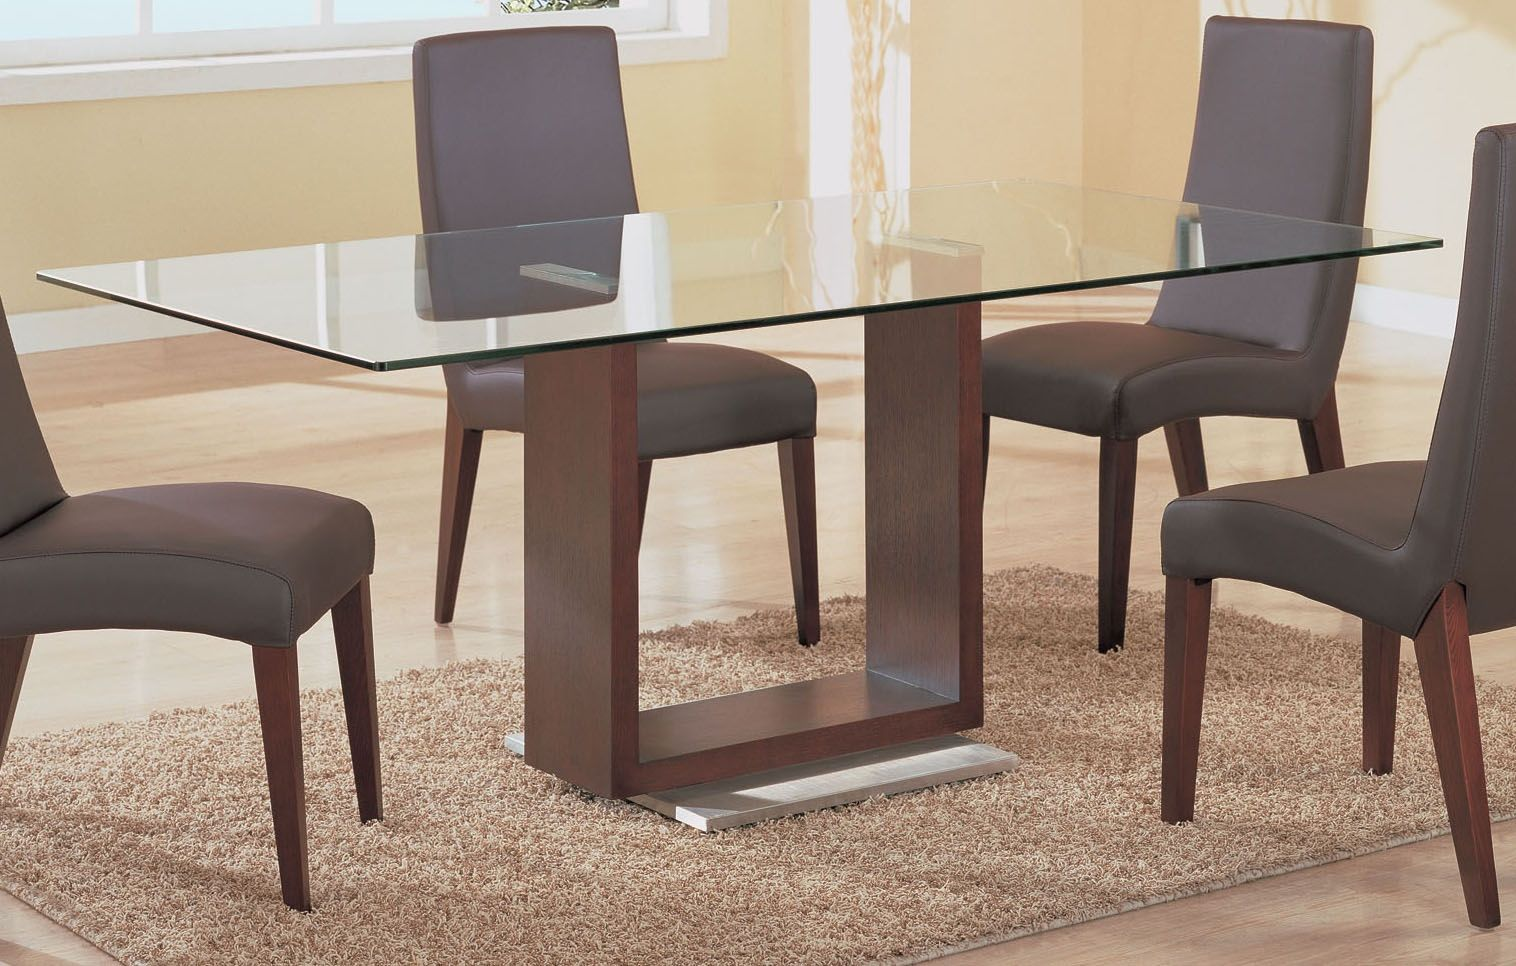 wood table bases | Captivating Glass Top Dining Table Wood Base With Cherry  Wood Chair .